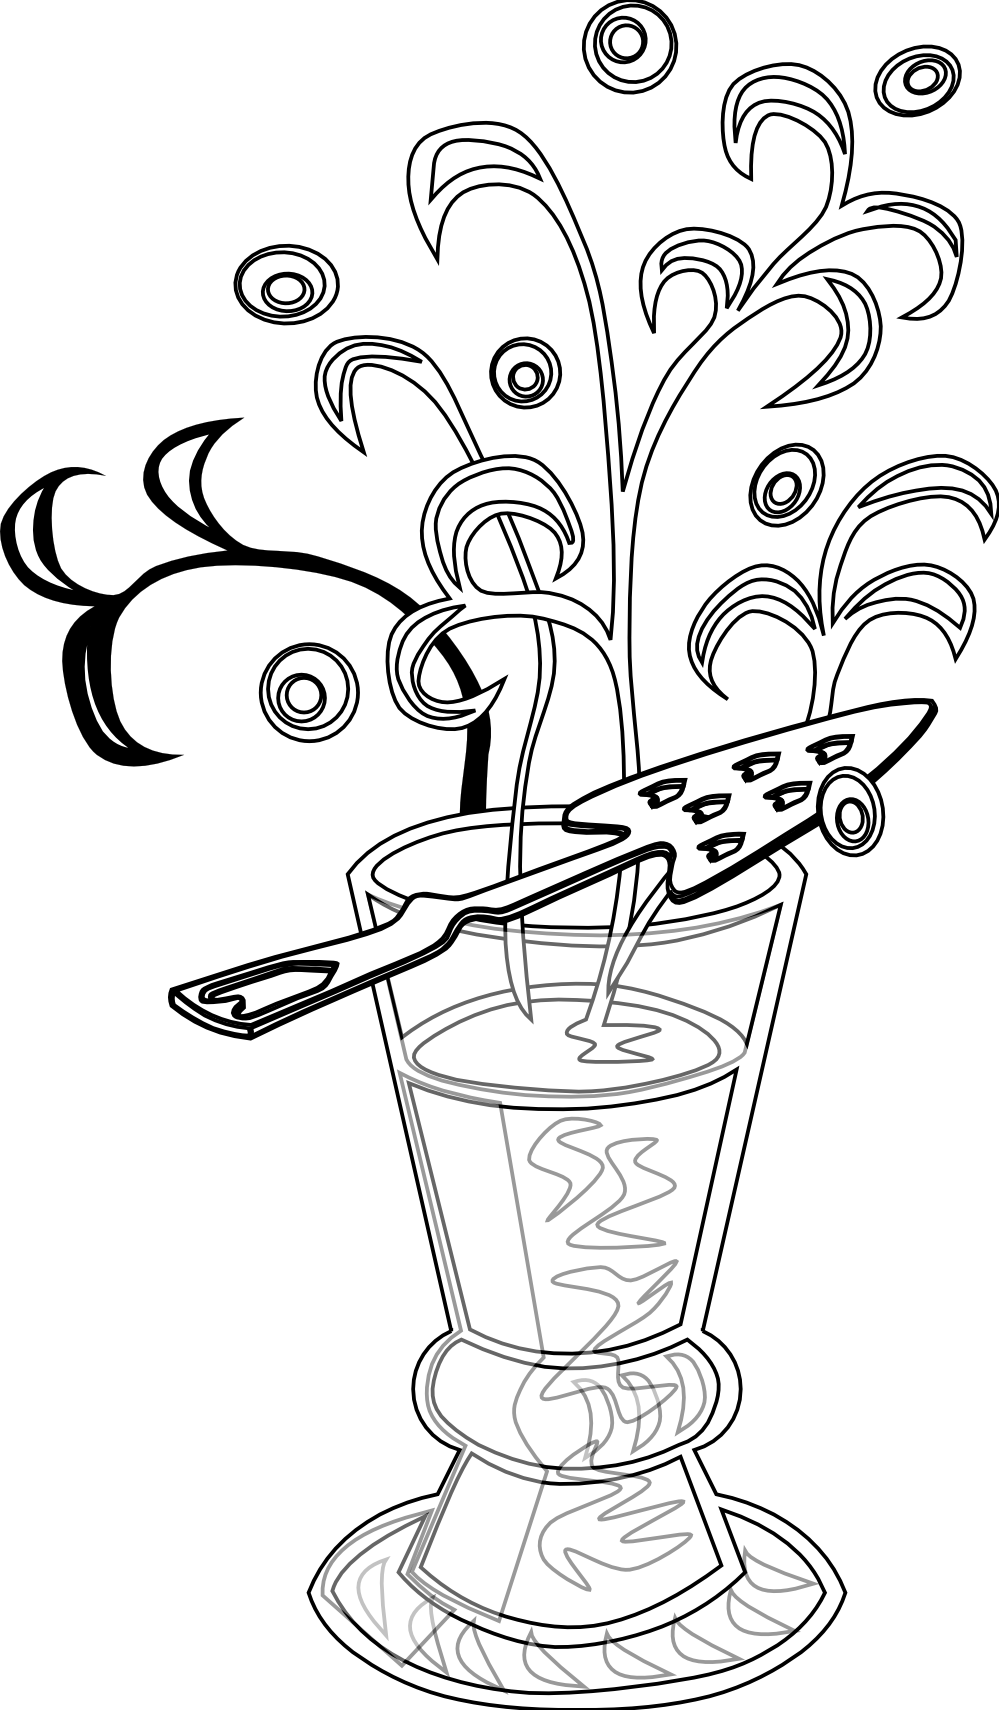 clipartist.net » Clip Art » absinthe drink black white line art SVG.